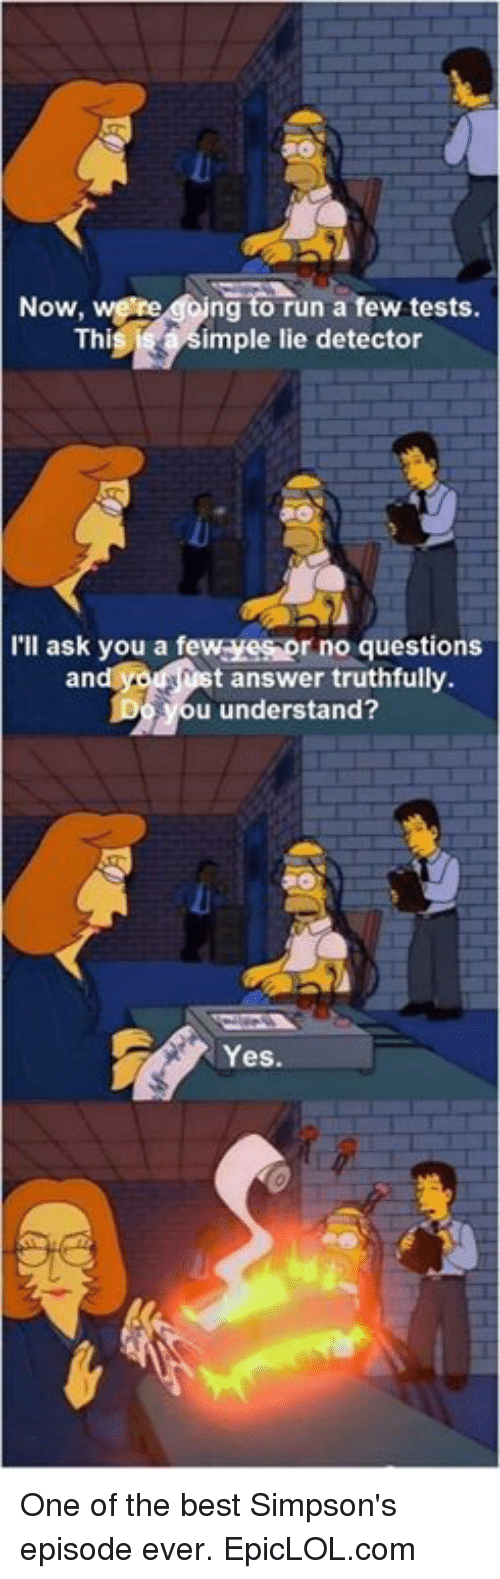 Best Simpsons: Now,  were doing to run a few tests.  Thi  imple lie detector  I'll ask you a few r no questions  t answer truthfully.  an  u understand?  Yes. One of the best Simpson's episode ever. EpicLOL.com